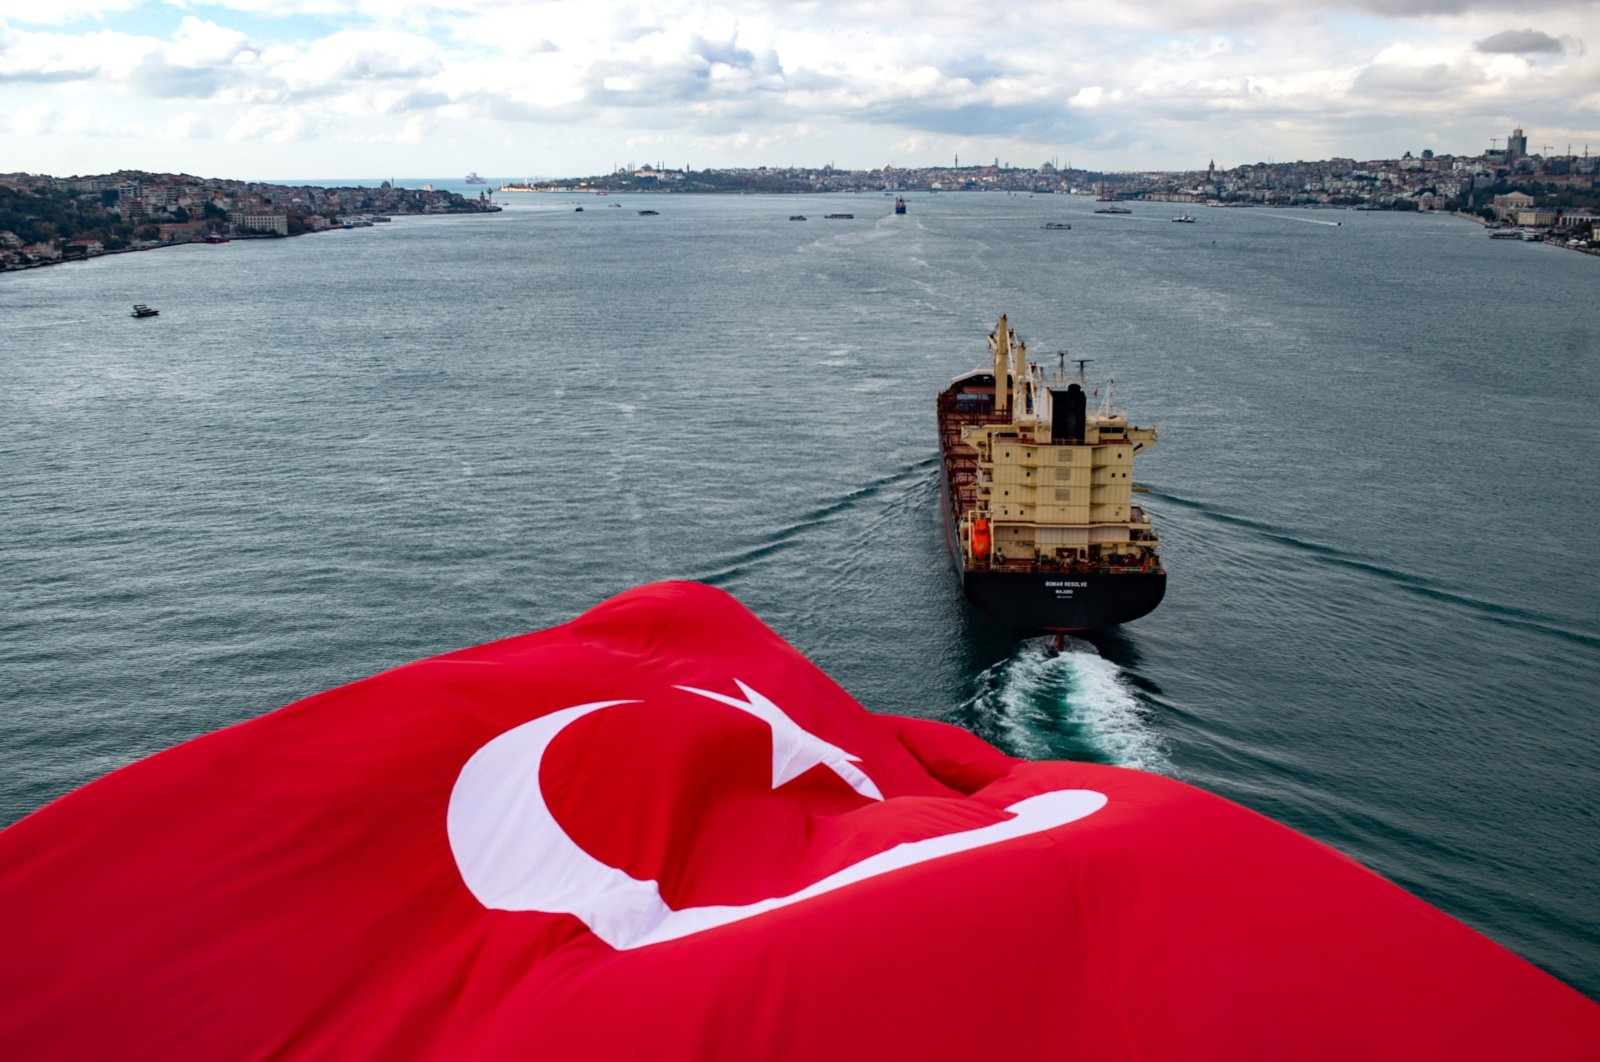 The Turkish national flag waves on the July 15 Martyrs' Bridge, formerly known as the Bosporus Bridge, as a ship sails through the Bosporus, in Istanbul, Turkey Nov. 8, 2020. (AFP Photo)